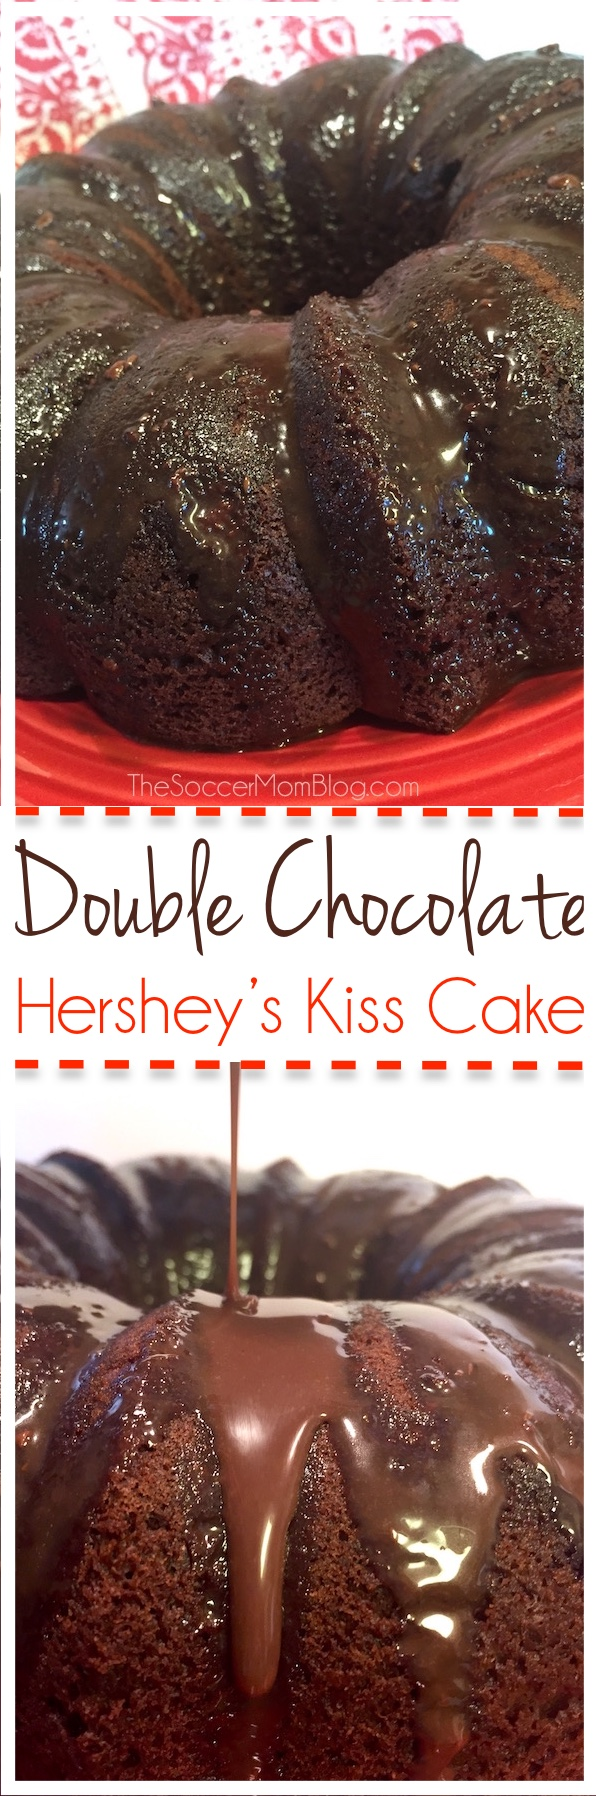 This Double Chocolate Hershey's Kiss Cake is a Chocoholic's Dream